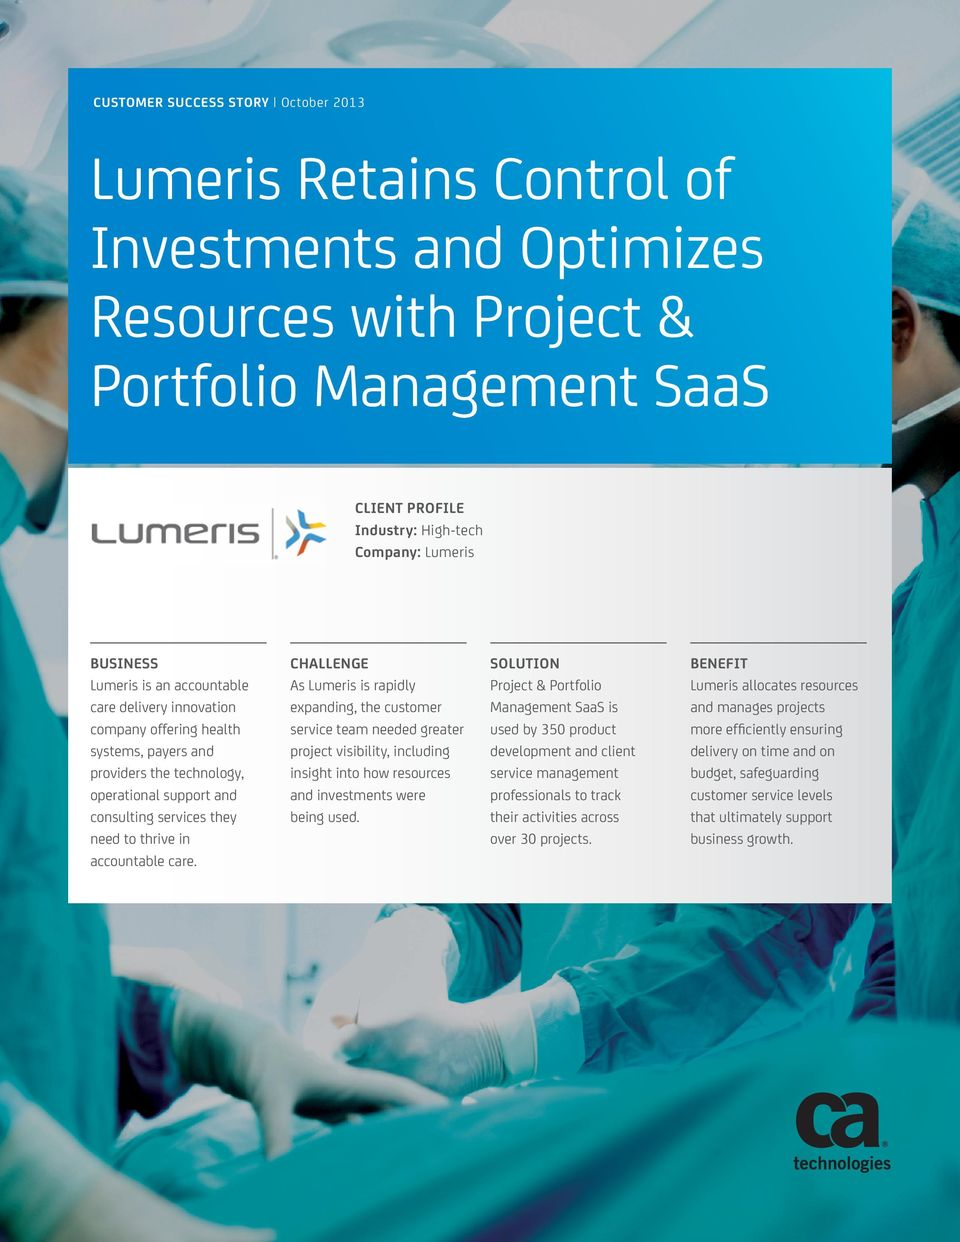 accountable care. CHALLENGE As Lumeris is rapidly expanding, the customer service team needed greater project visibility, including insight into how resources and investments were being used.